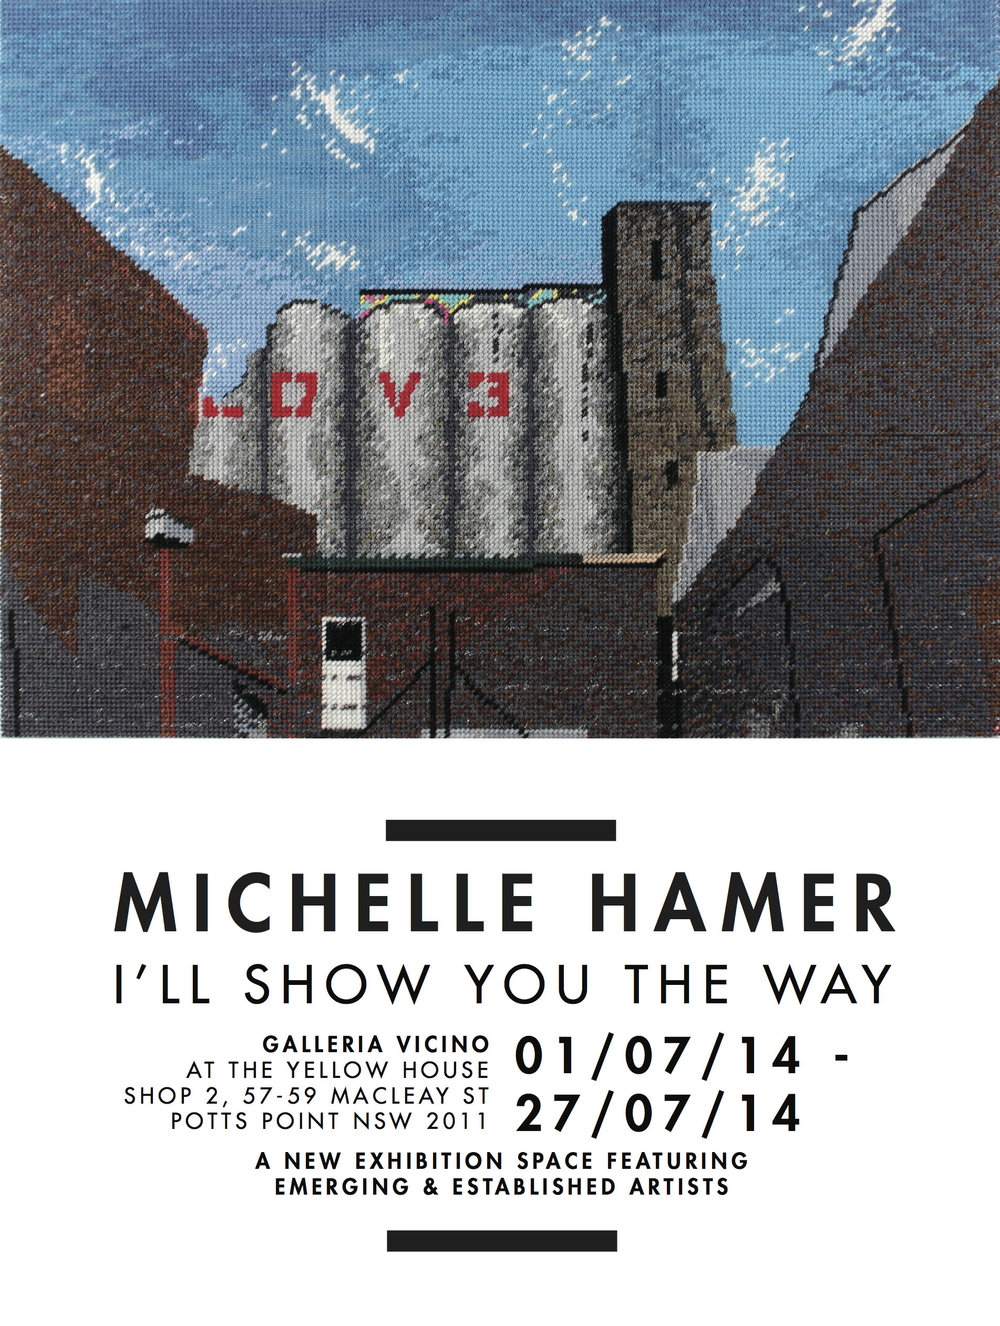 I'll Show You The Way  |  MICHELLE HAMER